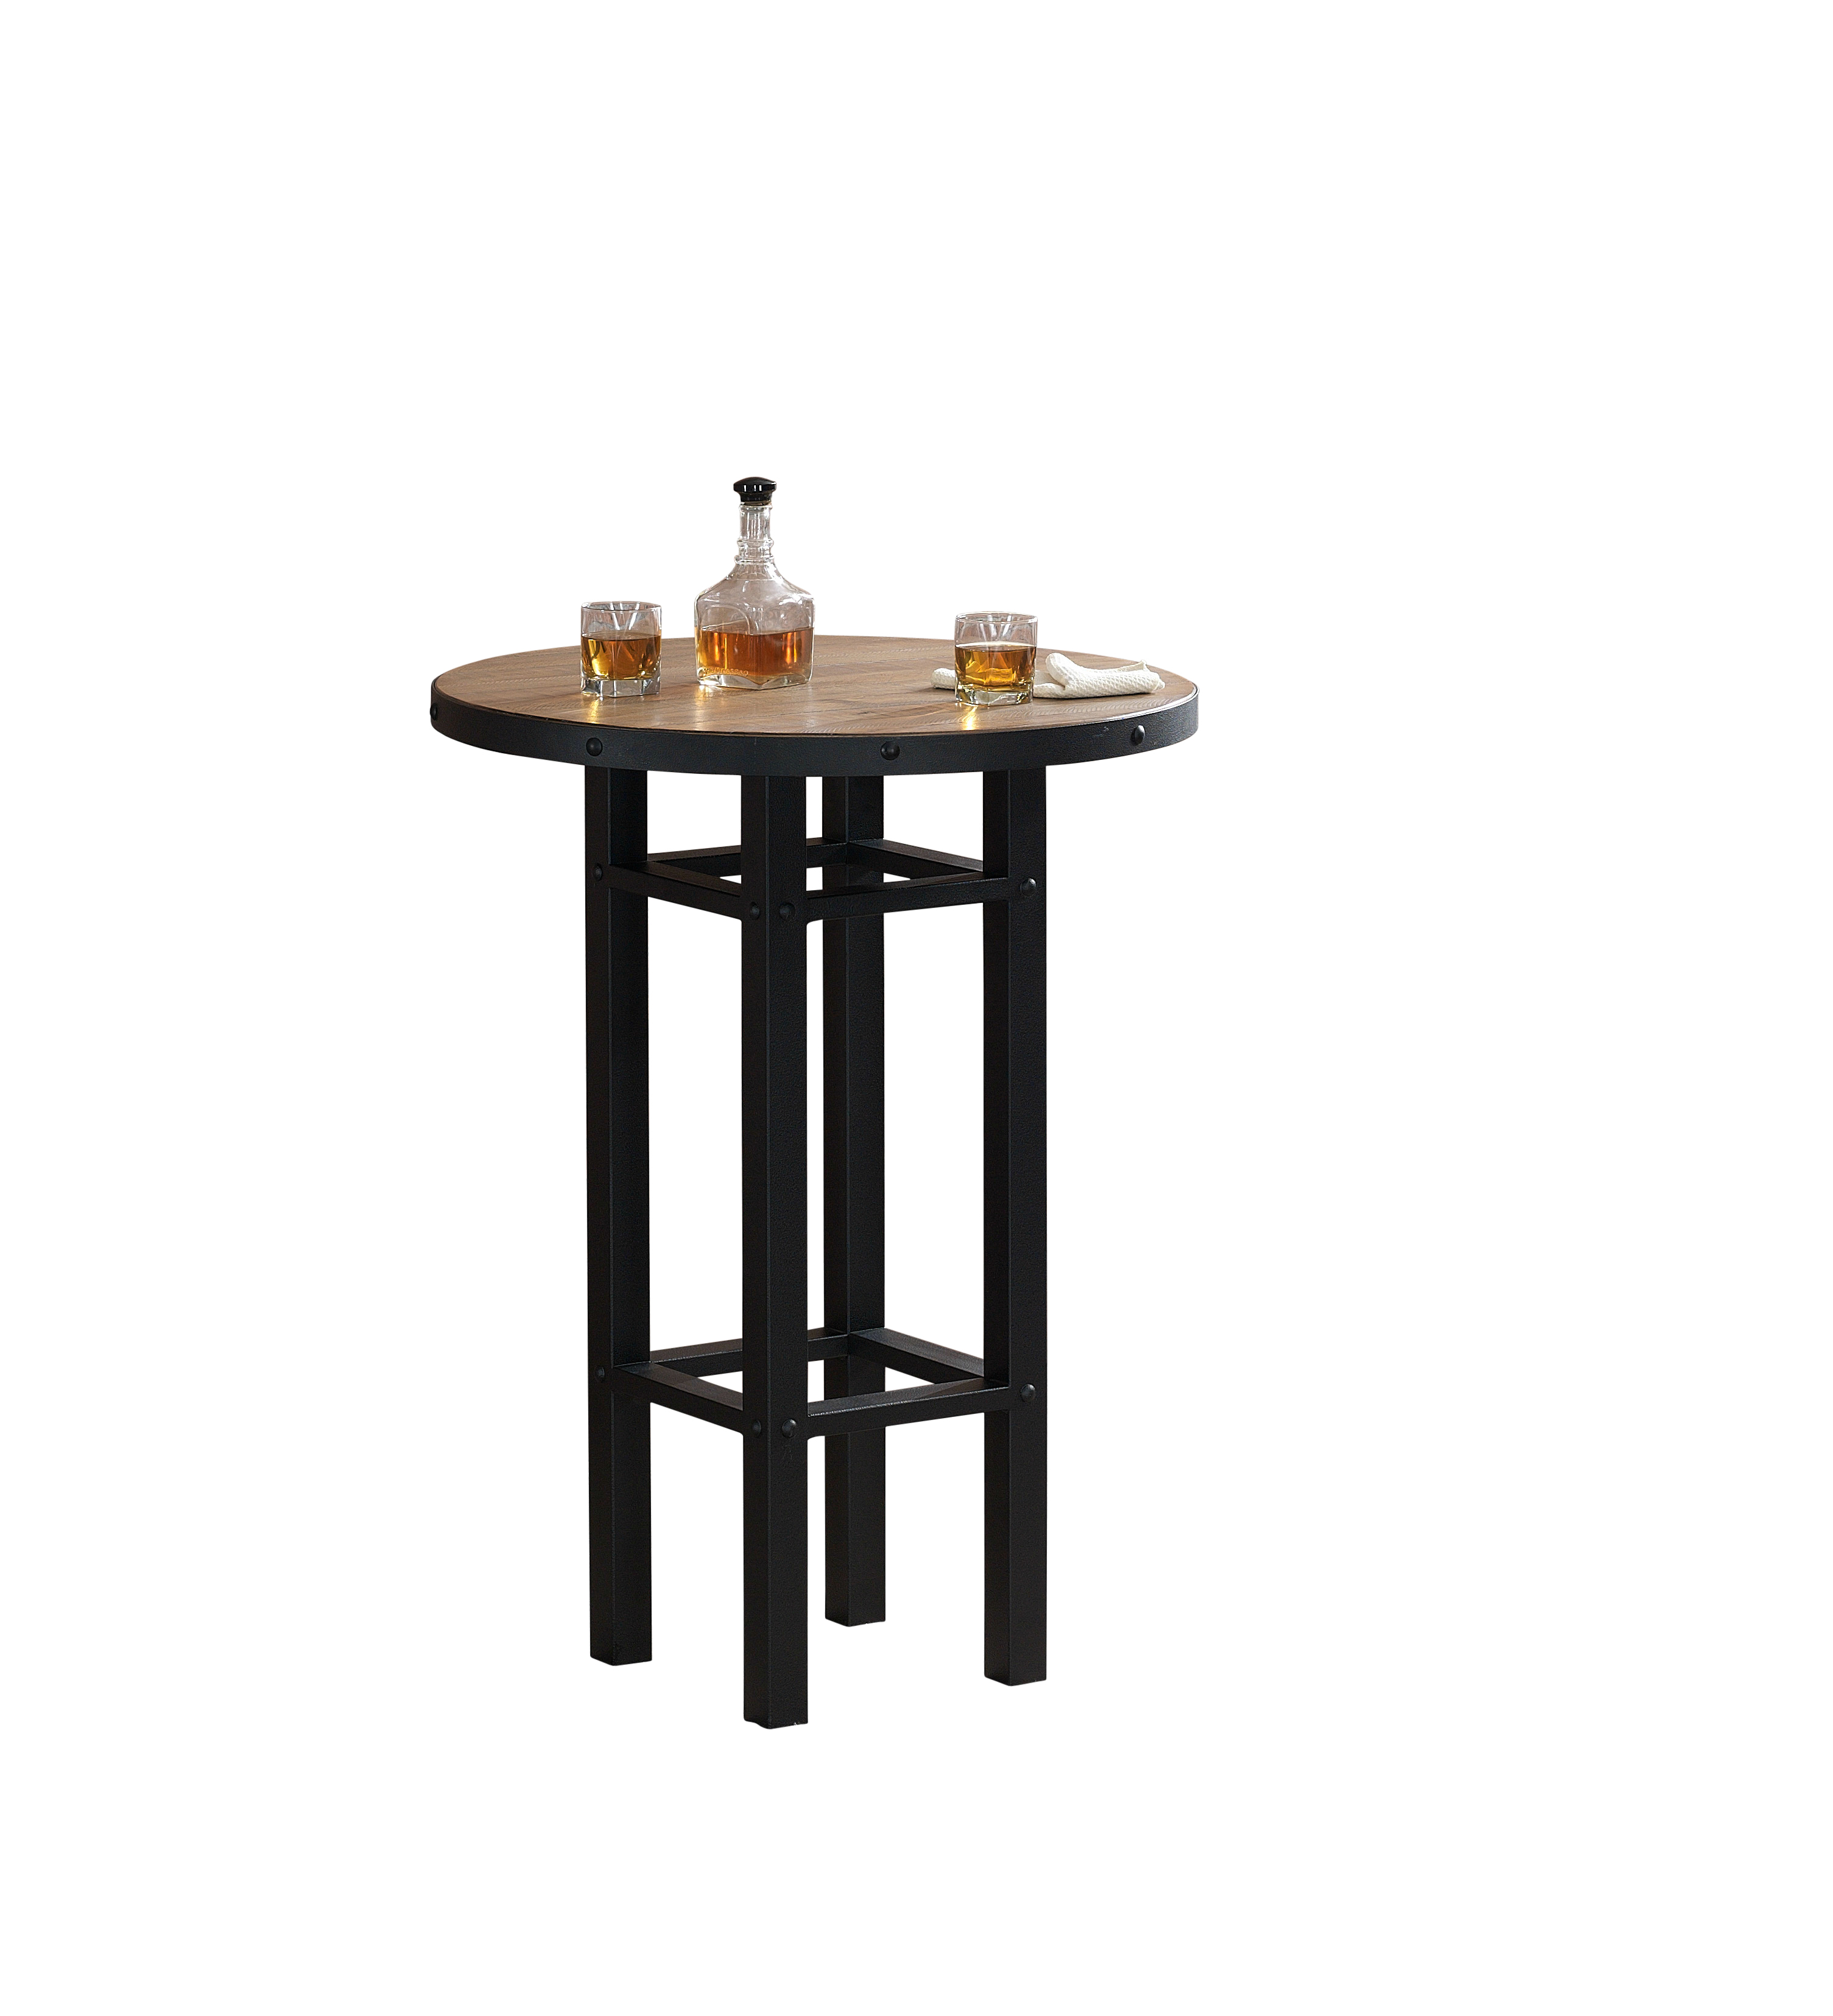 Charmant Gateway Pub Table In Reclaimed Wood   Walmart.com